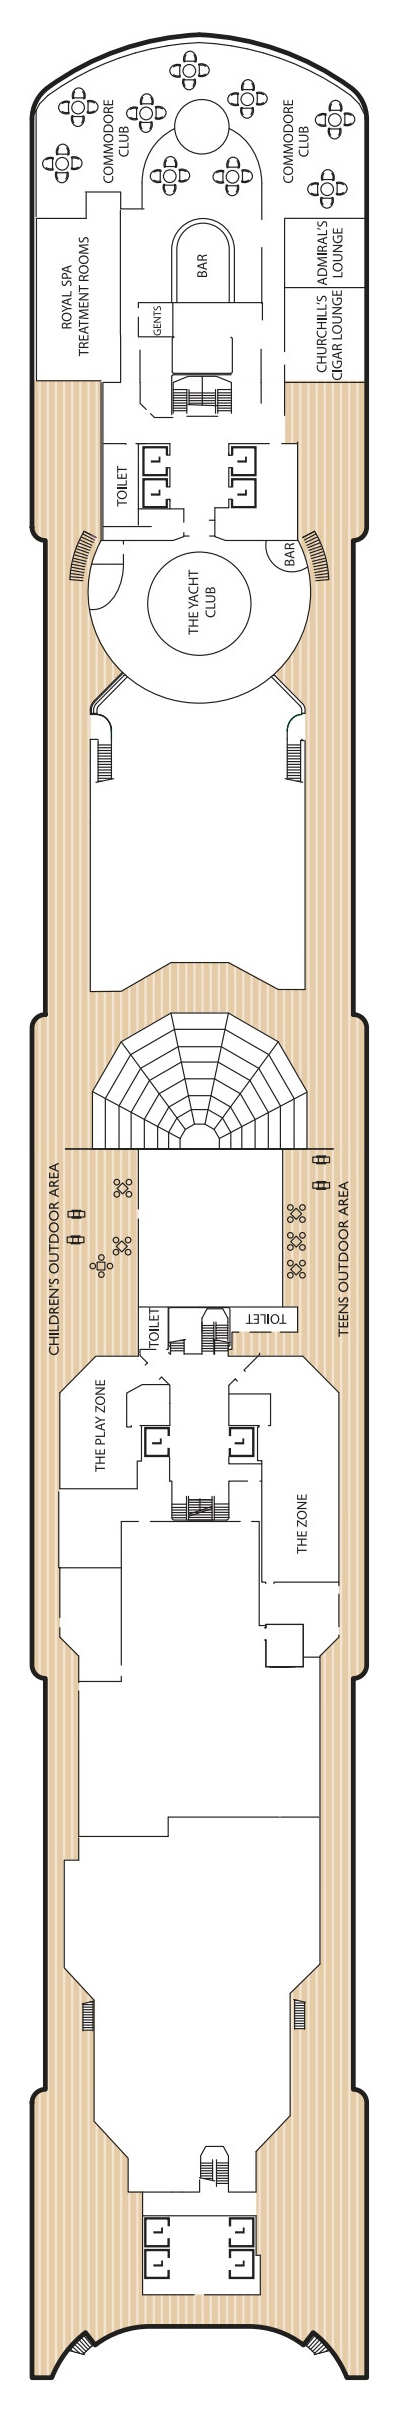 Queen Elizabeth Deck 10 layout